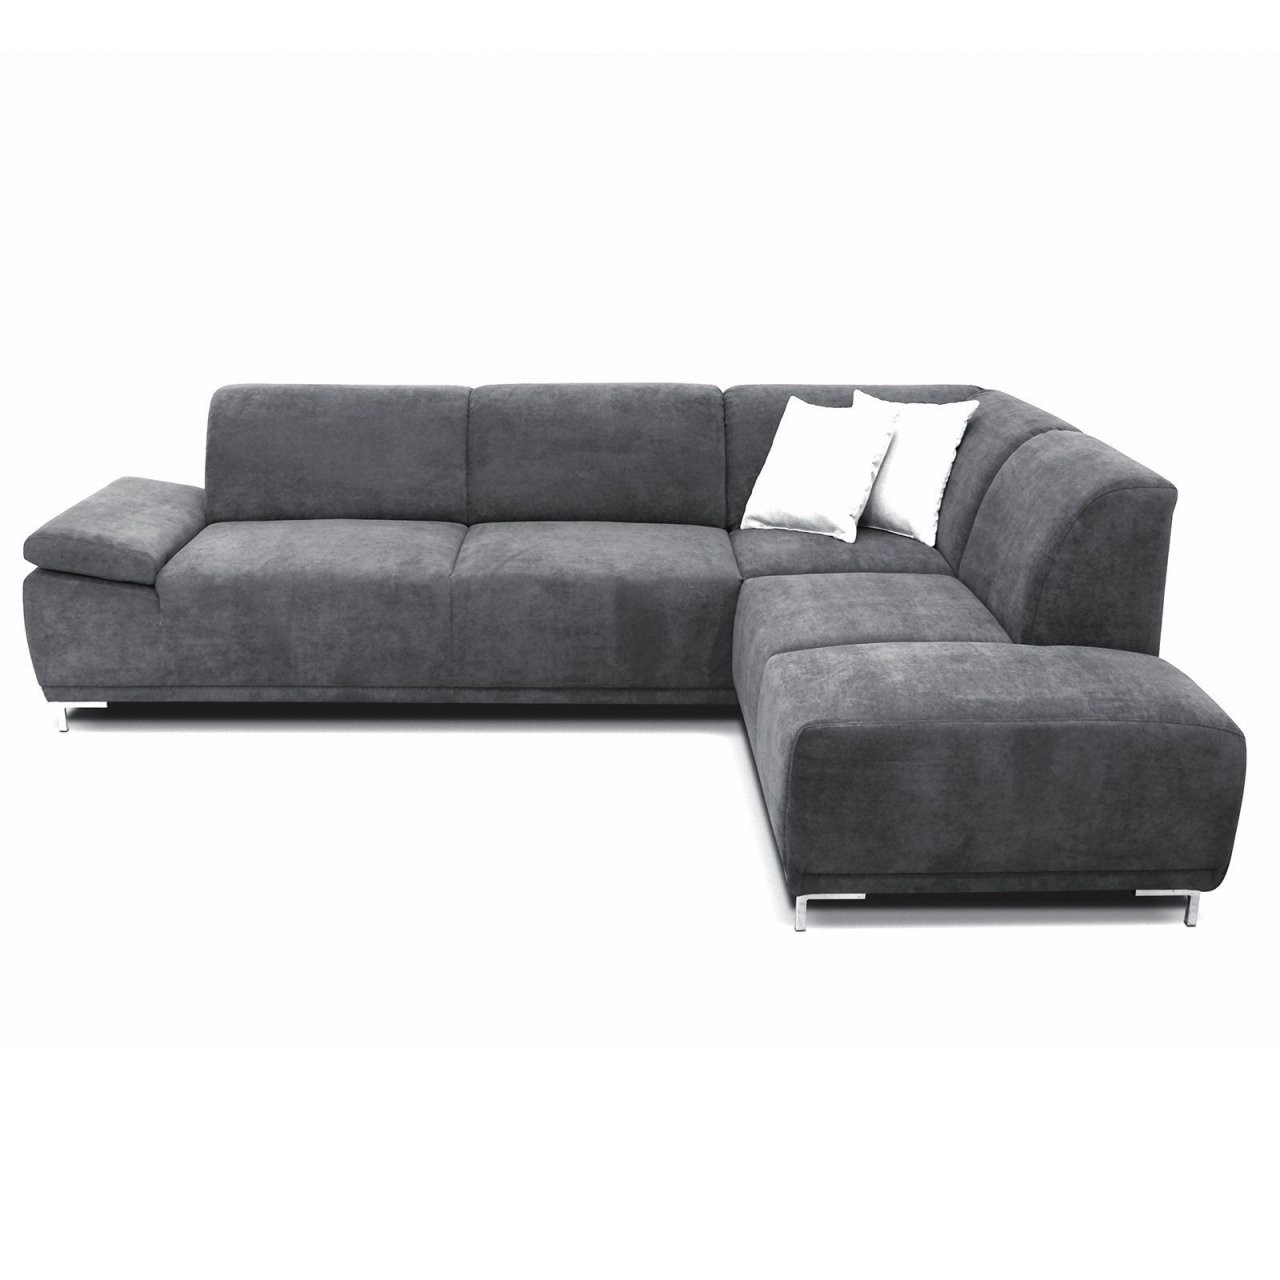 Boxspringsofa  Anthrazit  Ottomane Rechts  Furniture  Sofa von Eckcouch Mit Schlaffunktion Roller Photo